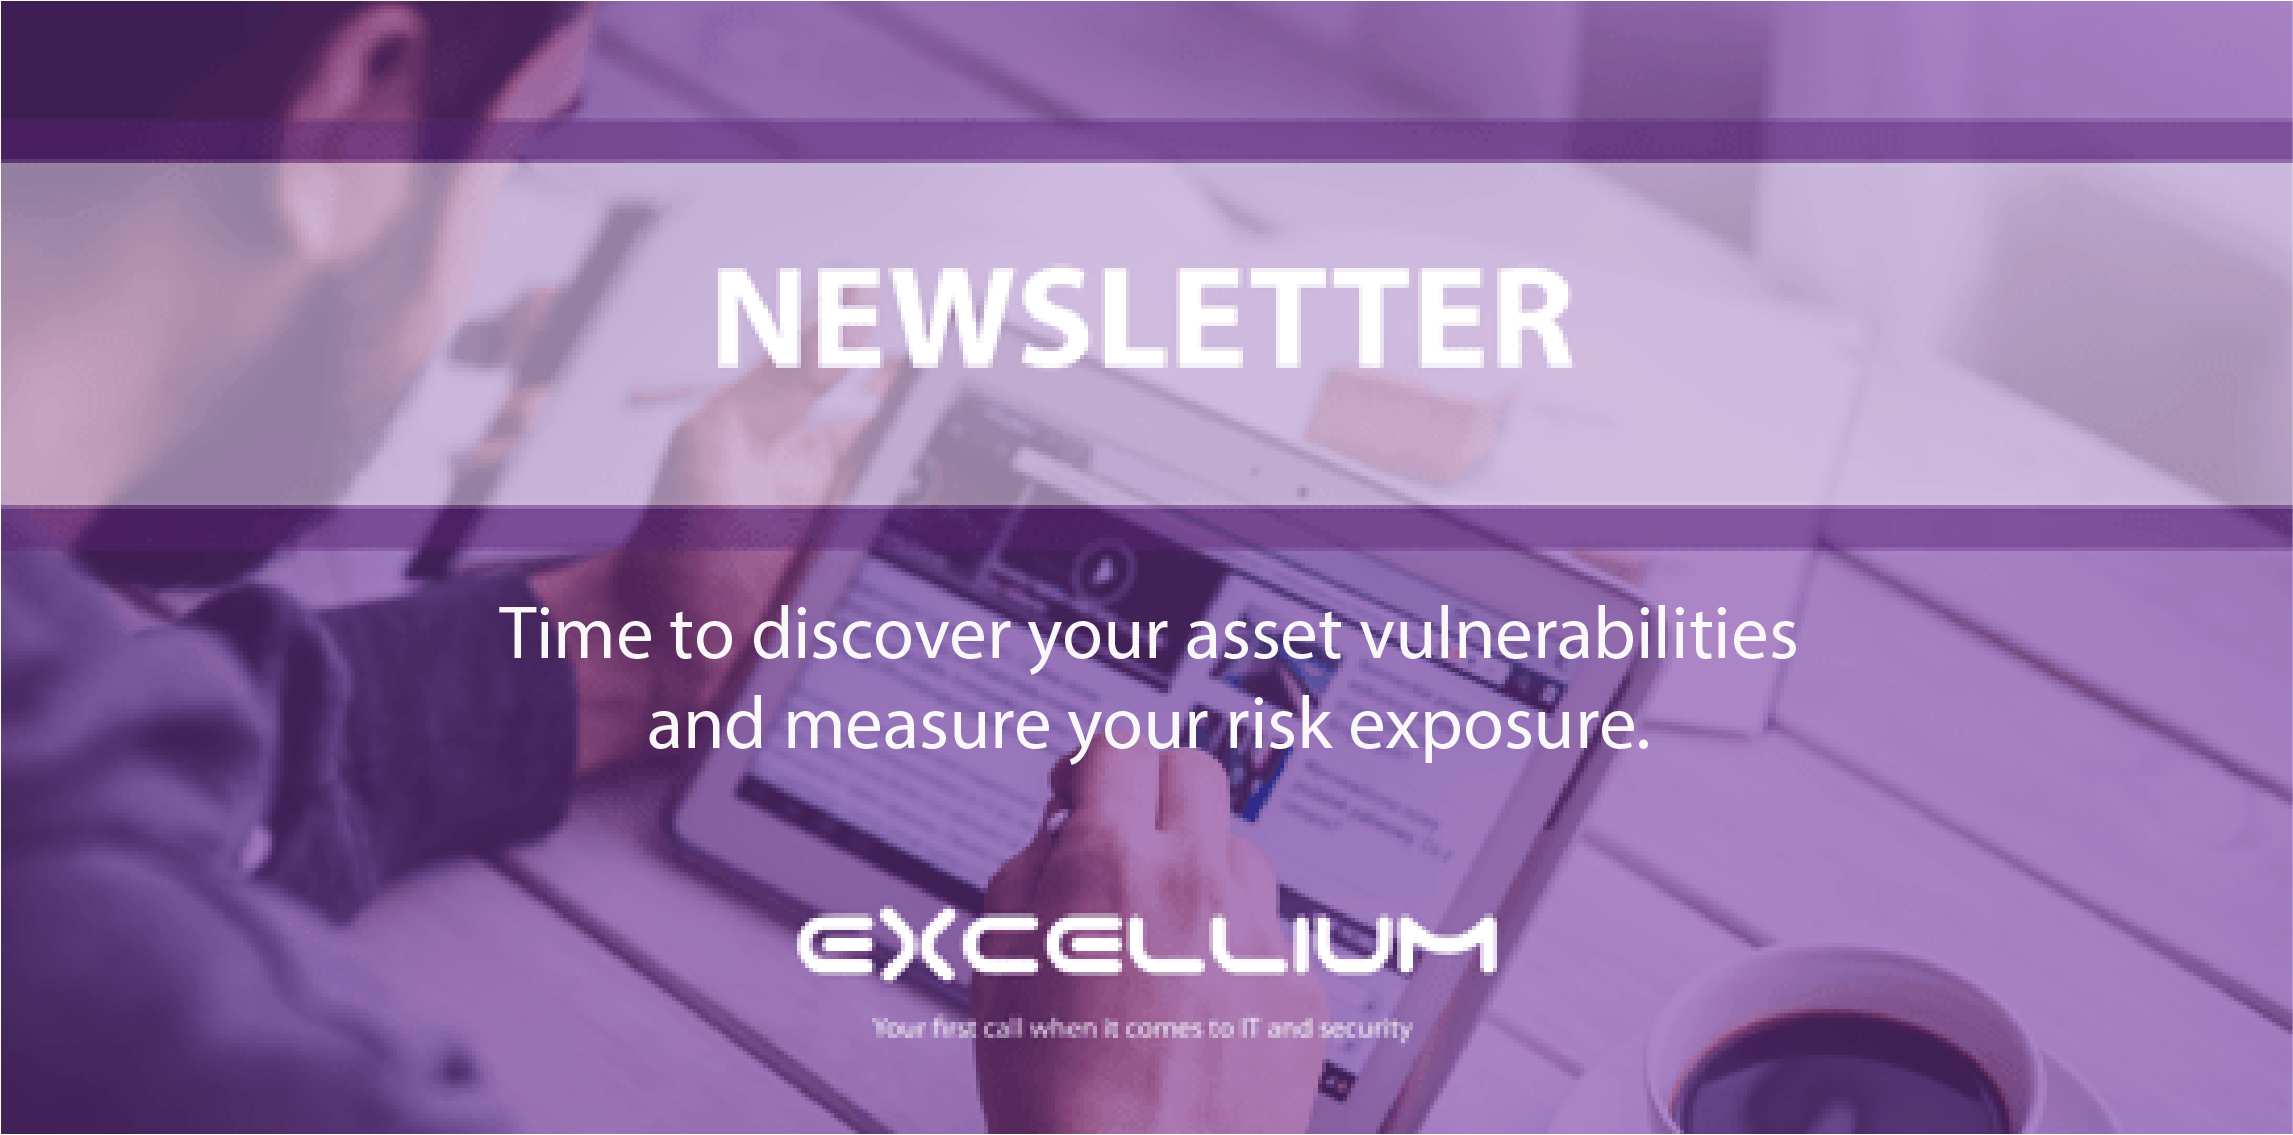 Excellium Newsletter banner - Time to discover your asset vulnerabilities and measure your risk exposure